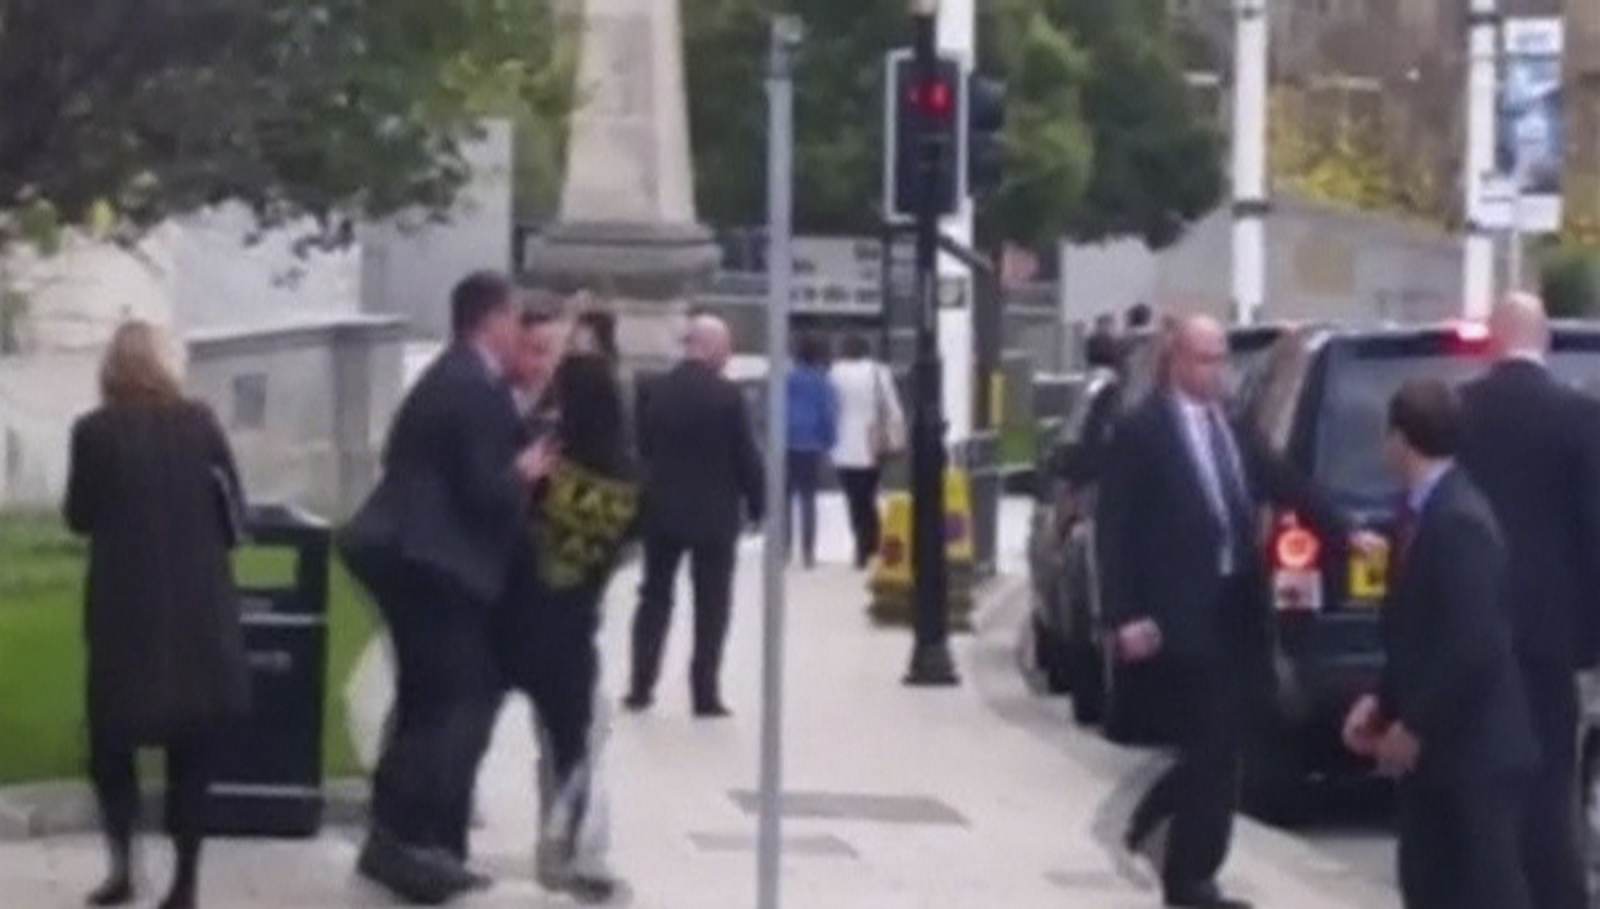 Footage of Cameron 'Shoved' by Member of Public in Leeds